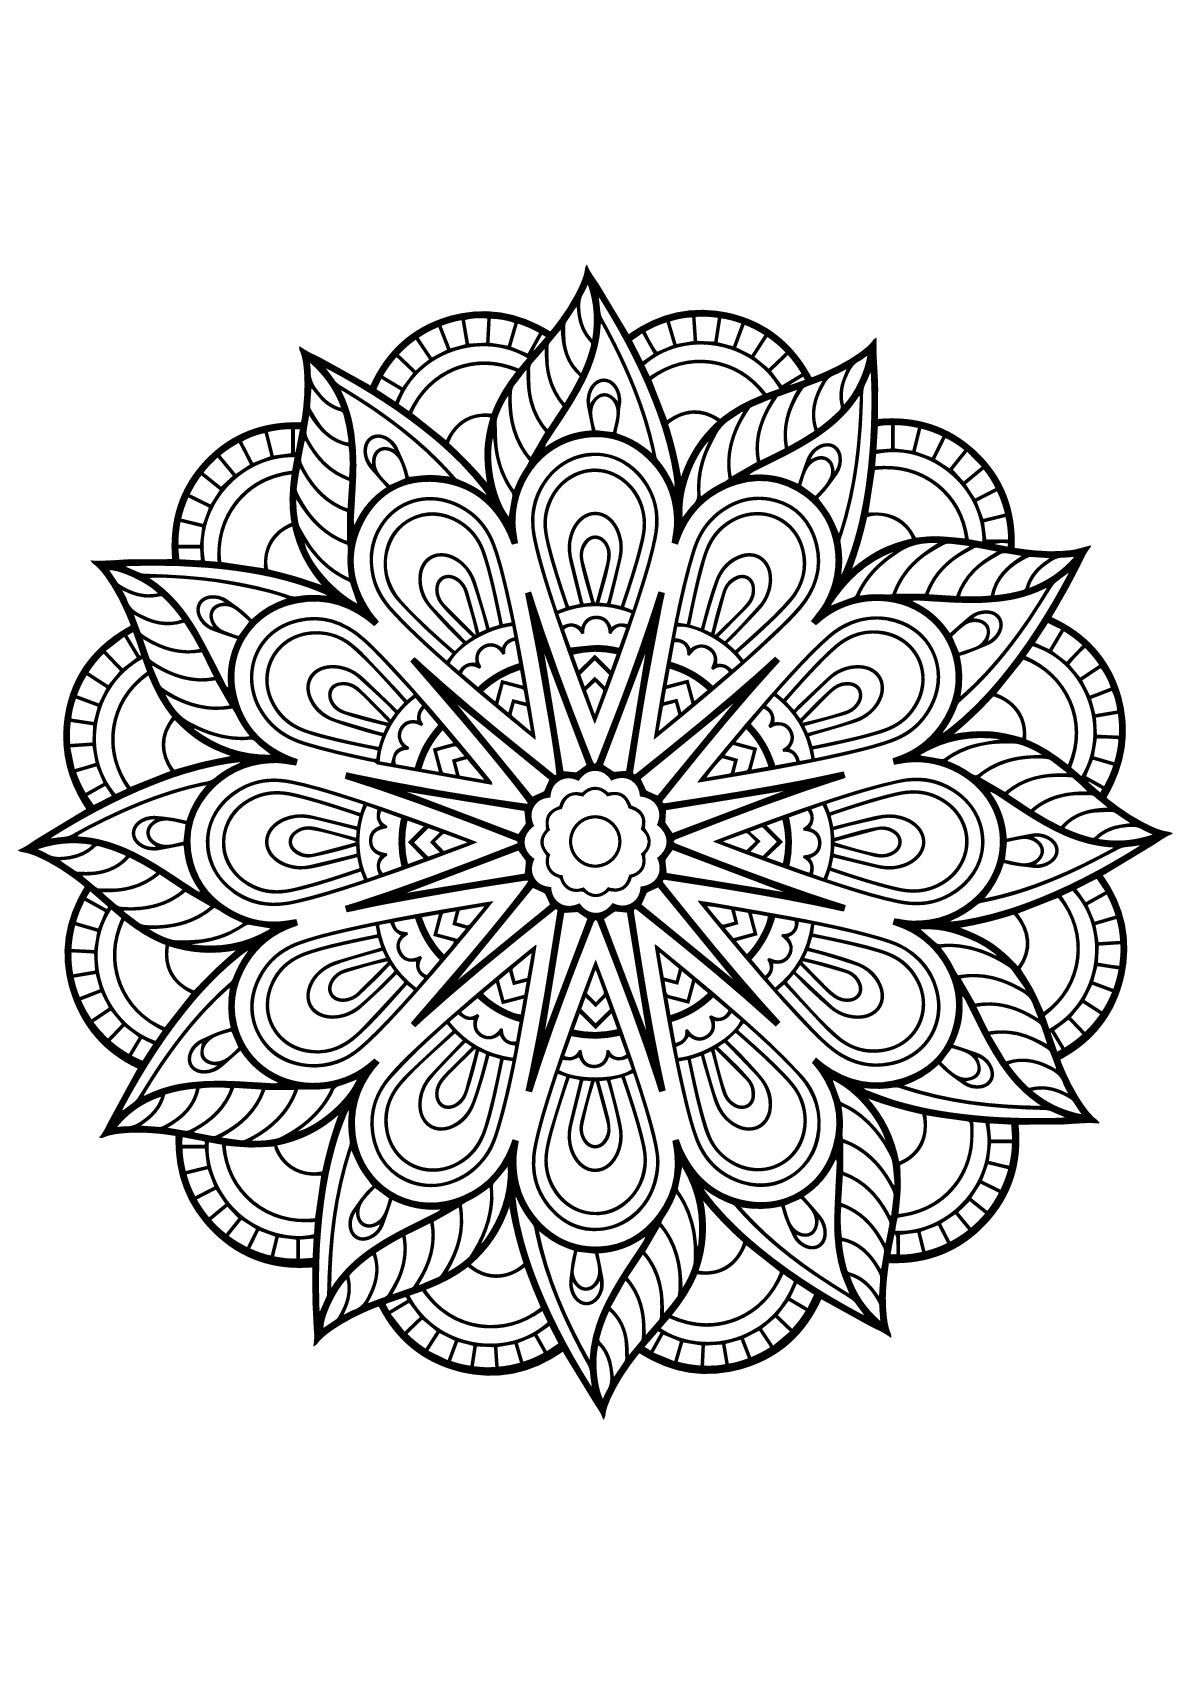 Incredible mandala from free coloring book for adults